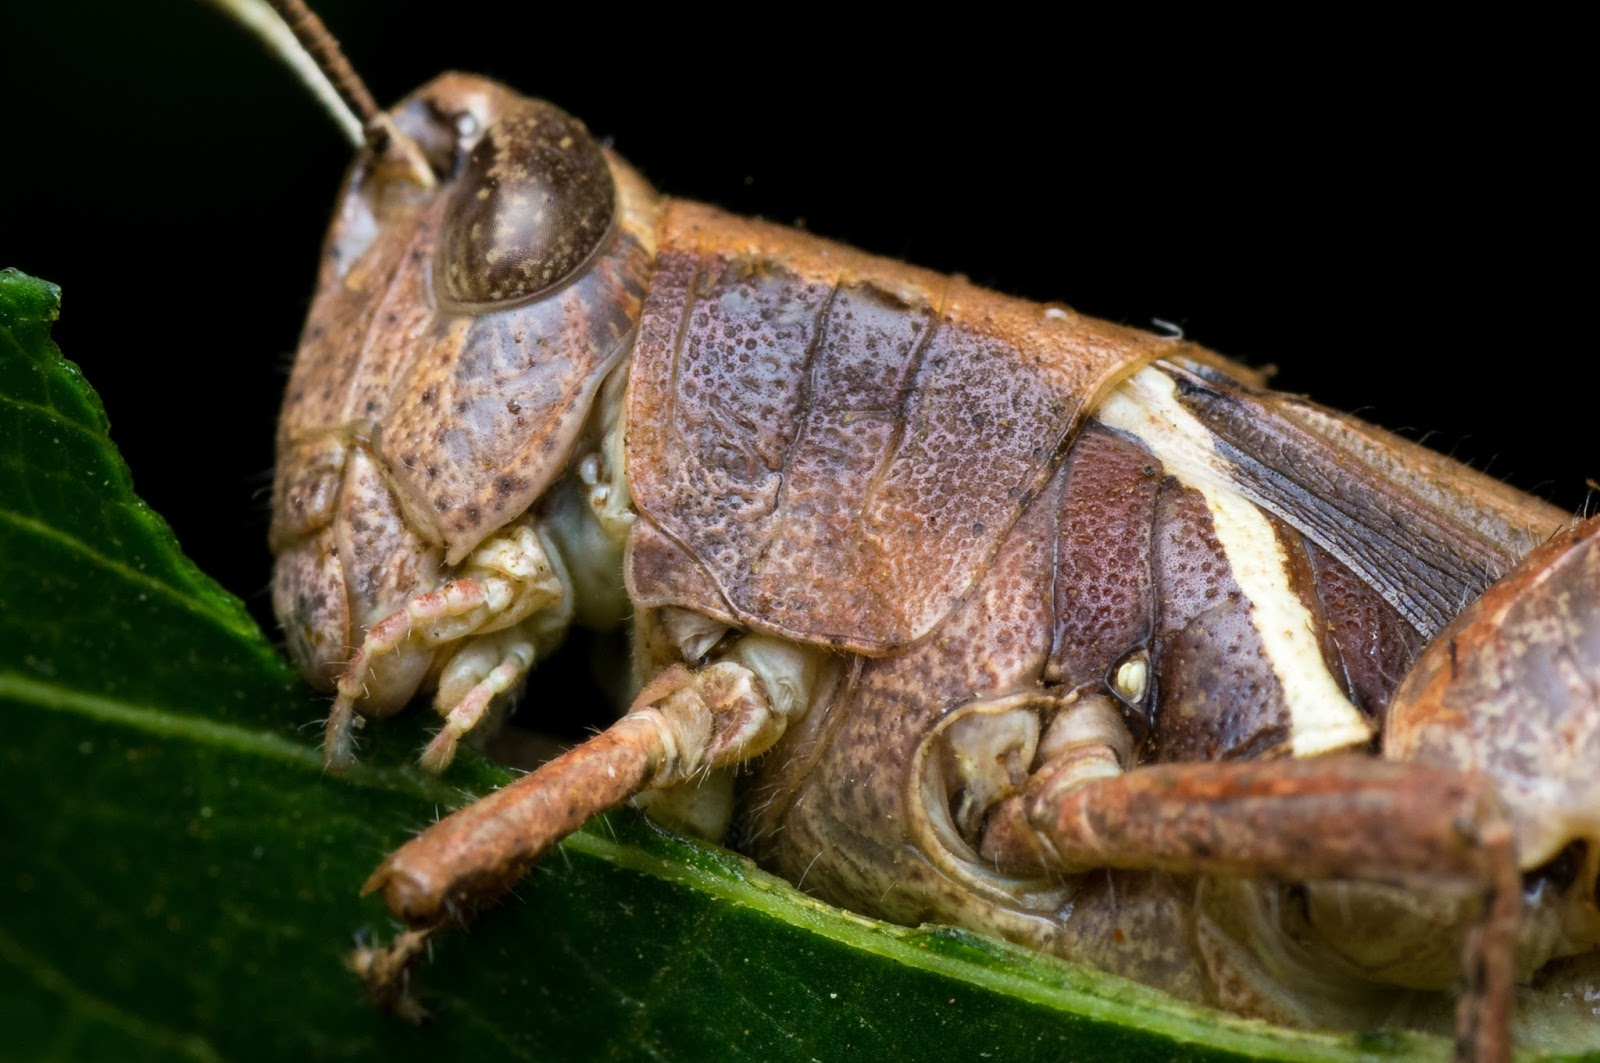 An image of a locust eating green leaf.